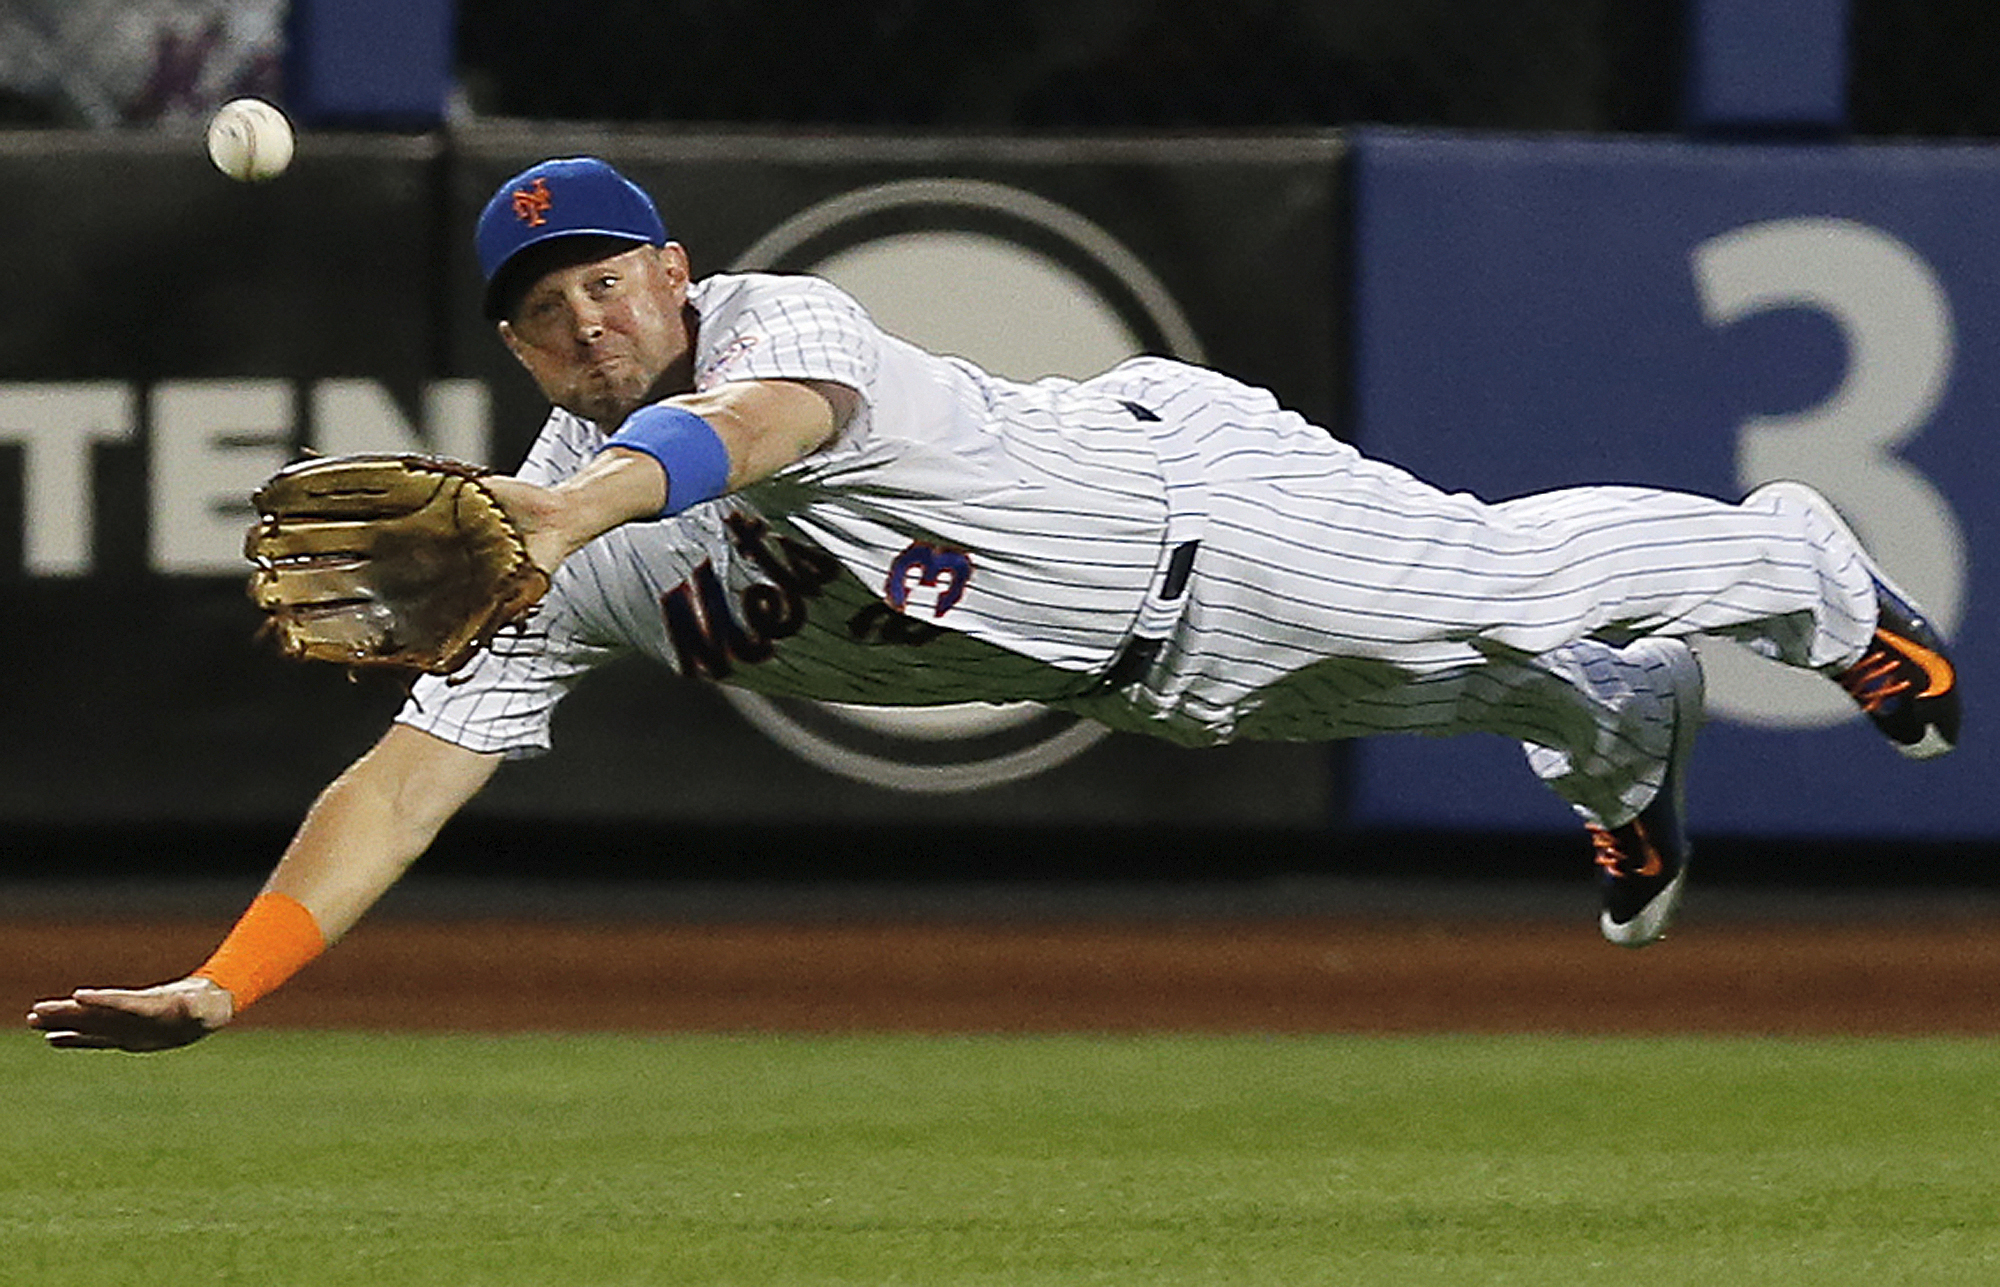 New York Mets right fielder Michael Cuddyer makes a leaping catch of a line drive by Miami Marlins' Martin Prado during the first inning of a baseball game in New York, Wednesday, Sept. 16, 2015.  (AP Photo/Kathy Willens)